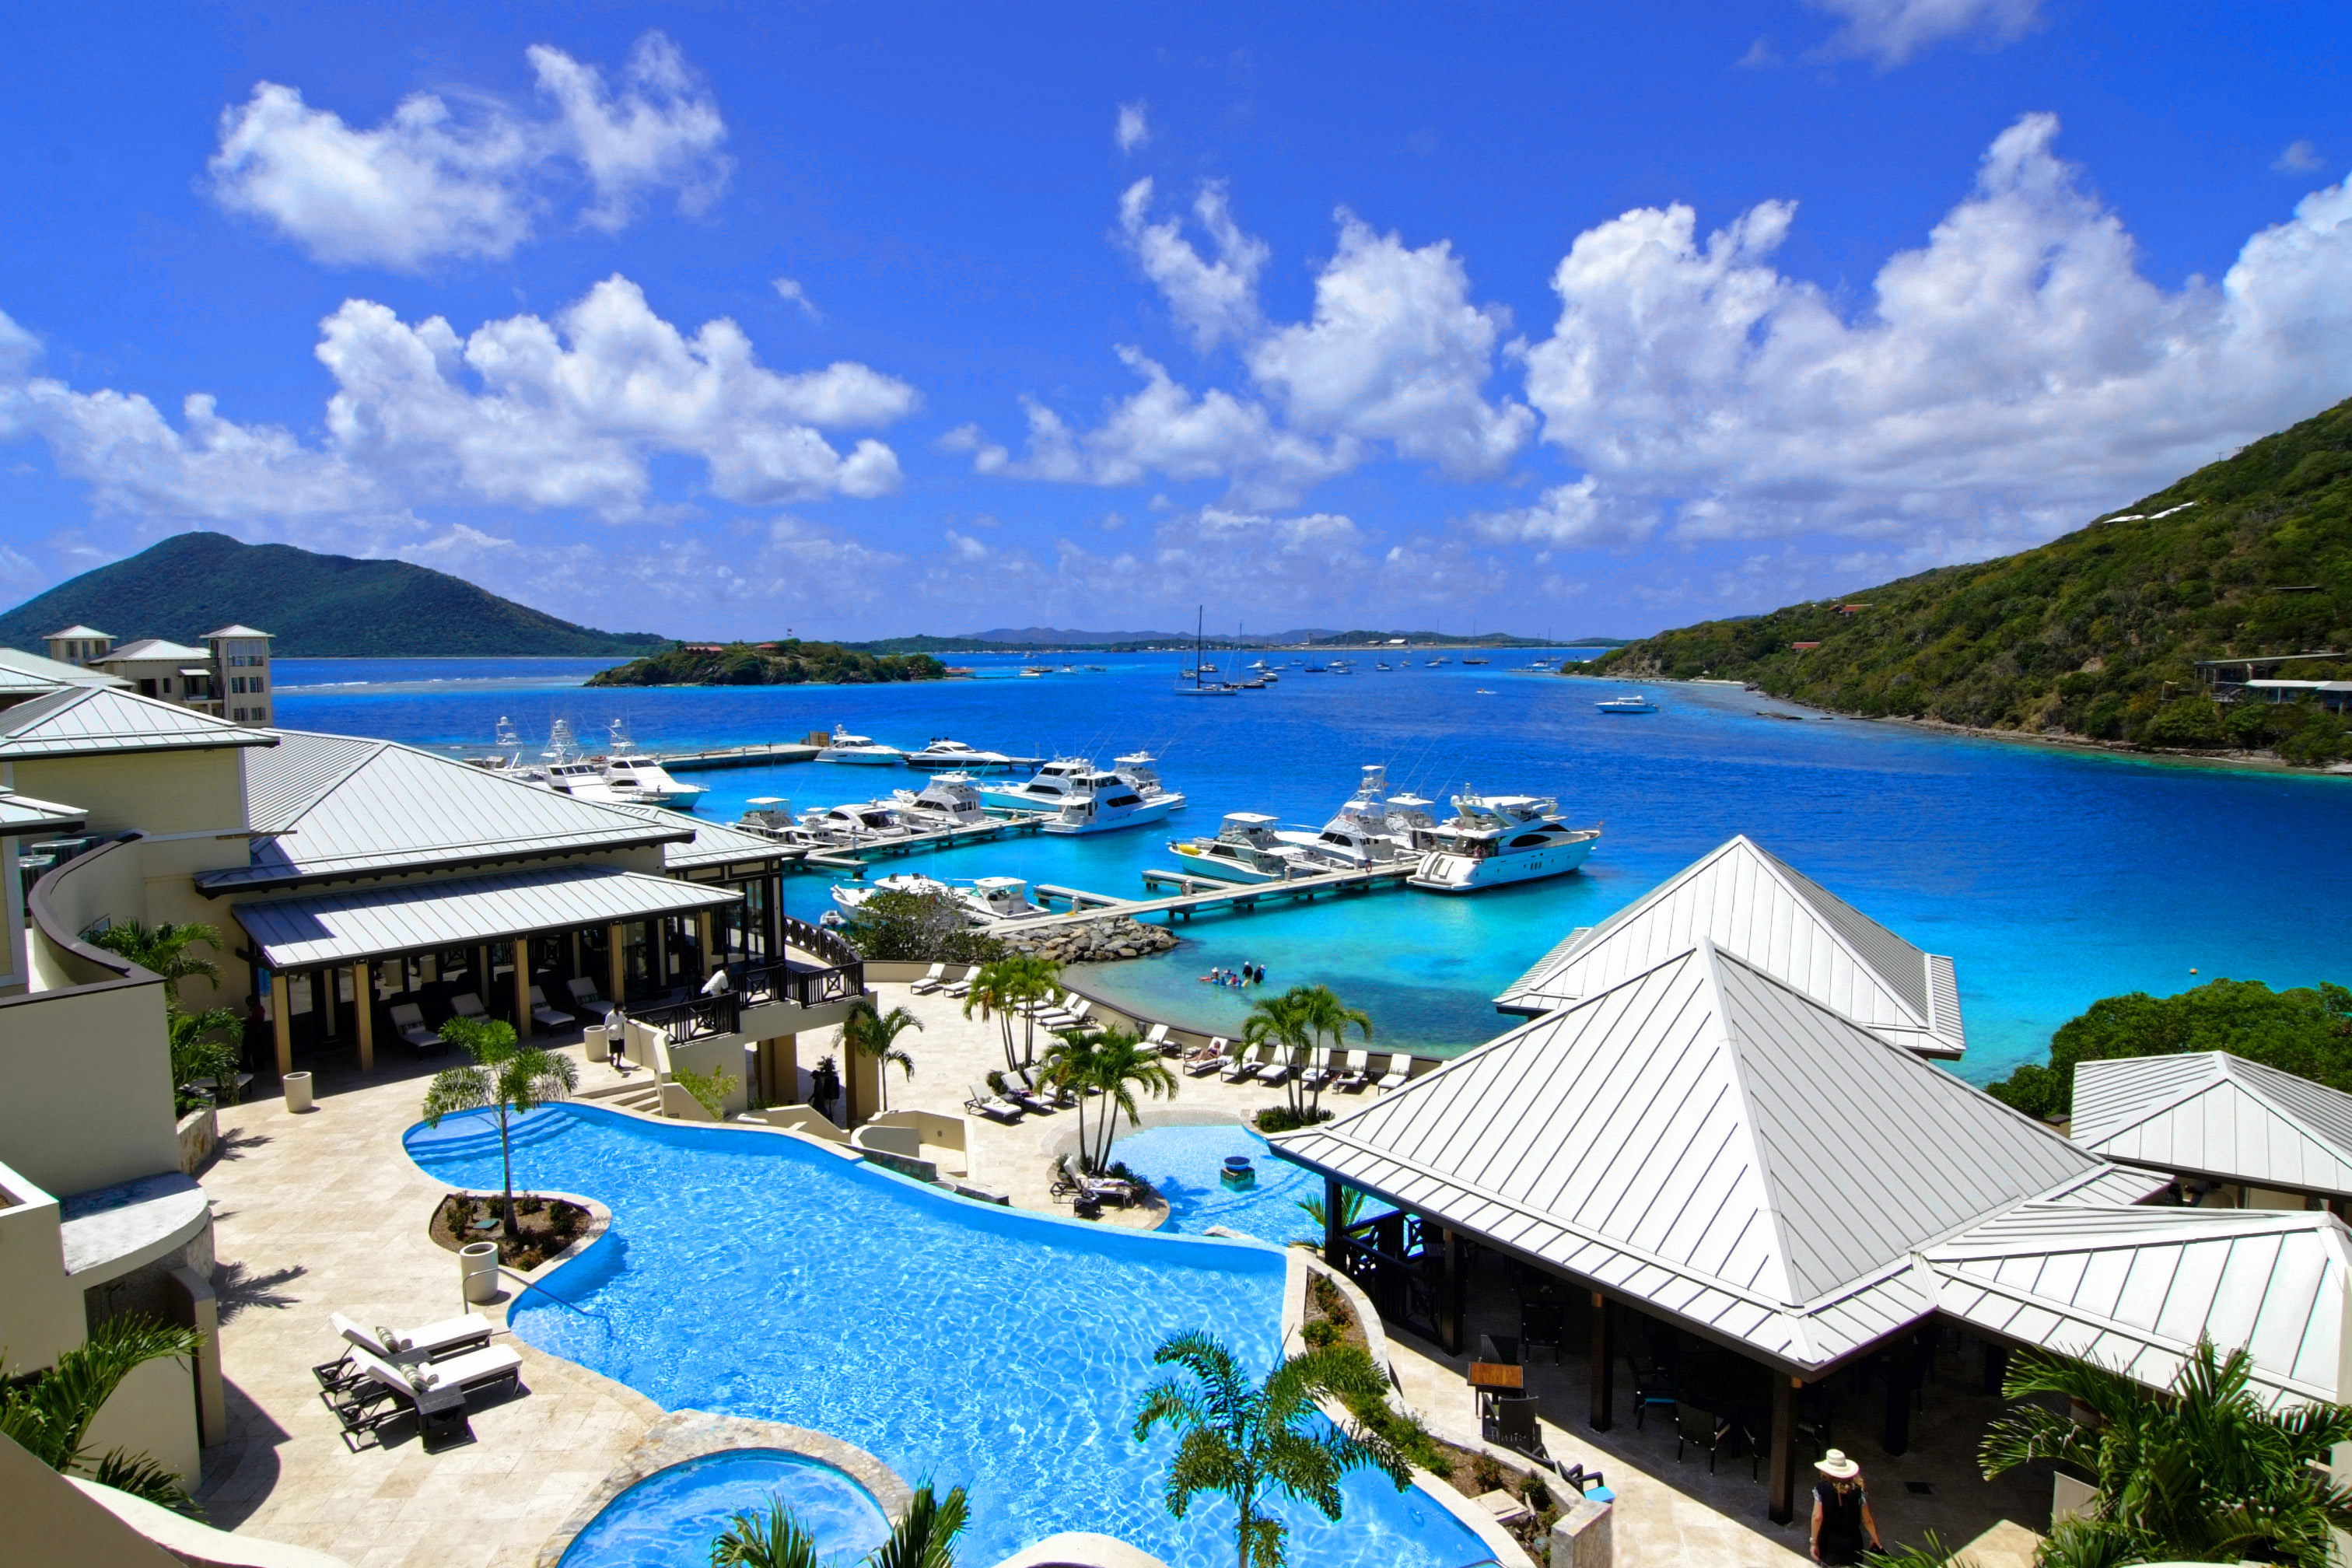 Virgin islands the exotic beaches gets ready for Amazing hotels